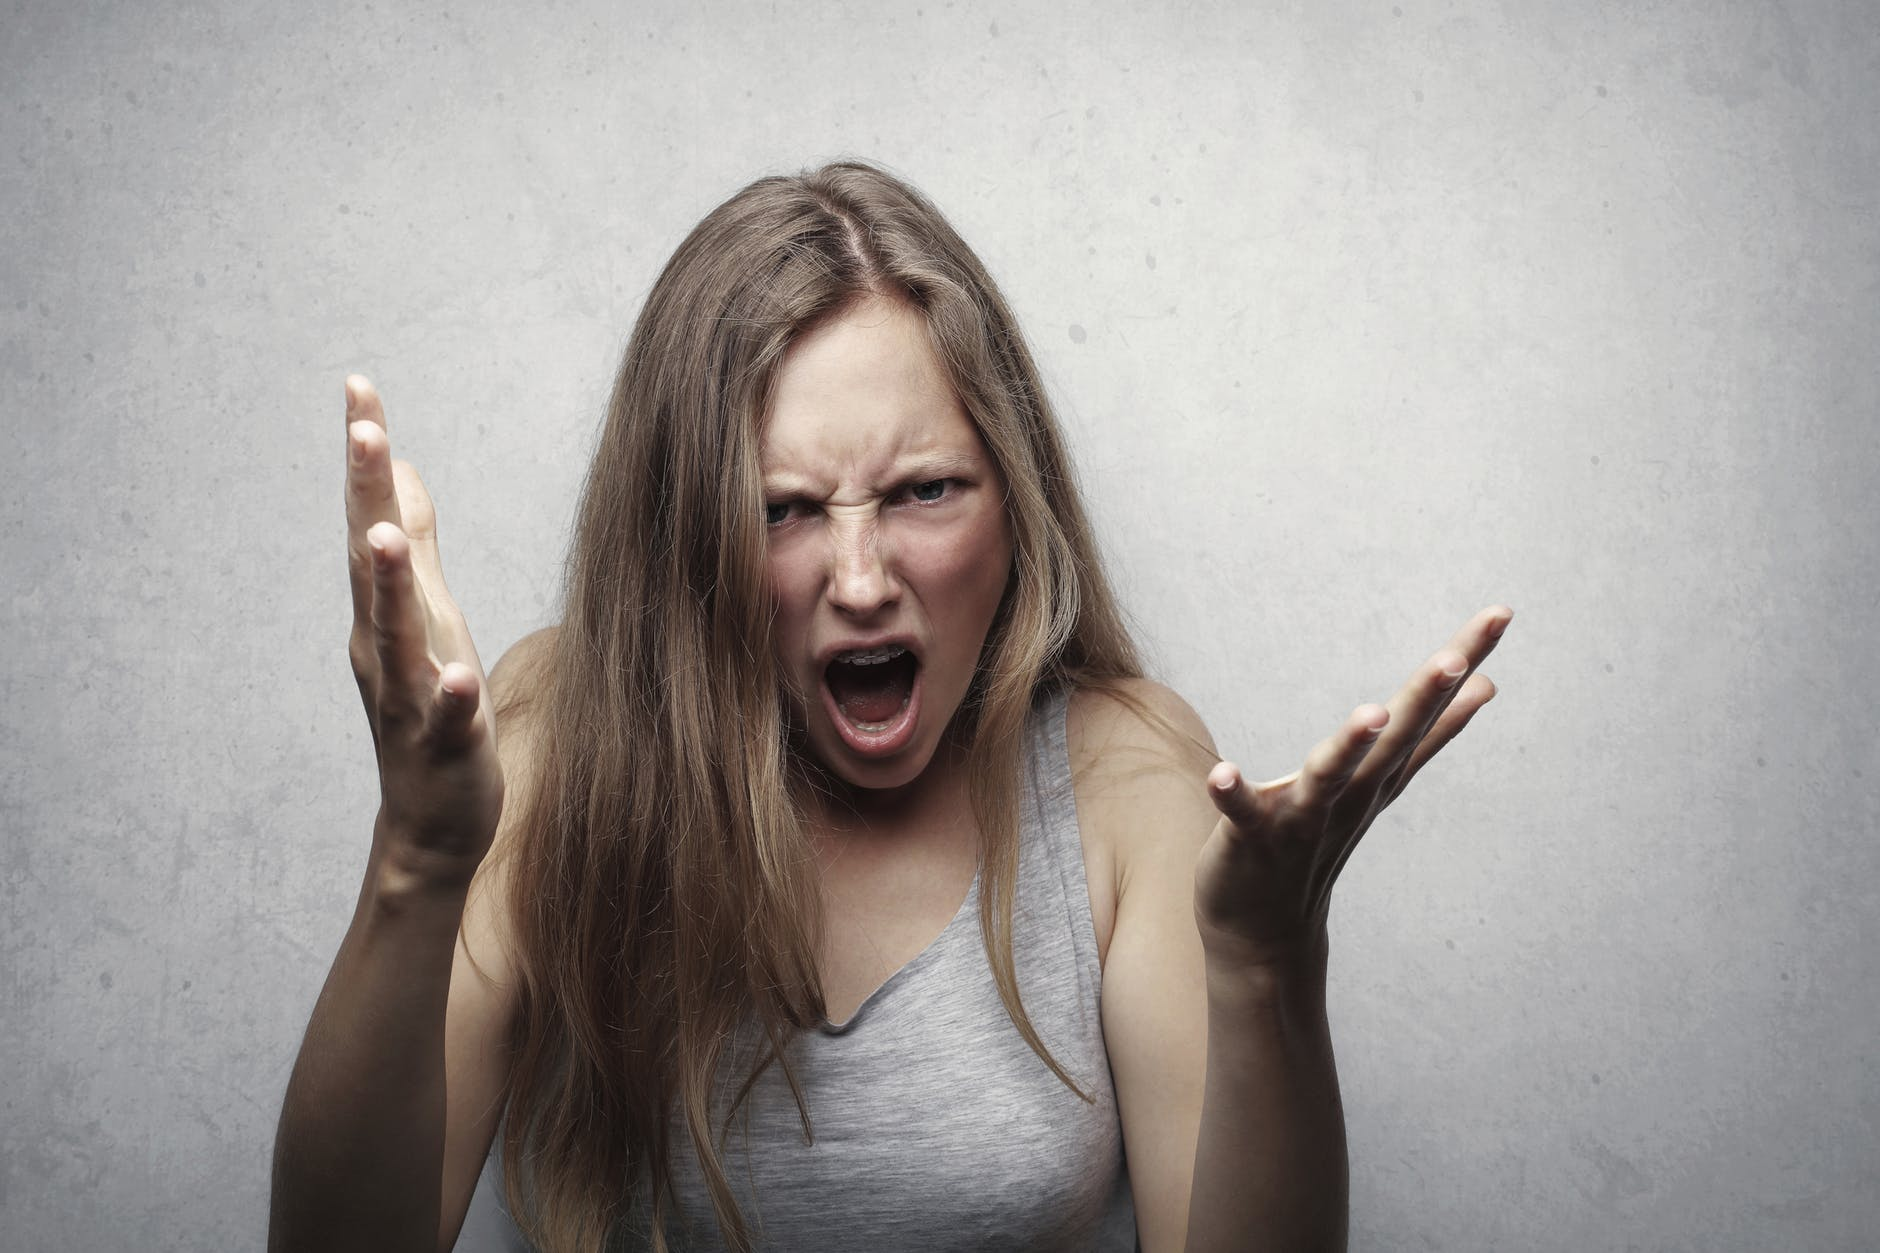 An angry young woman screaming. | Photo: Pexels.